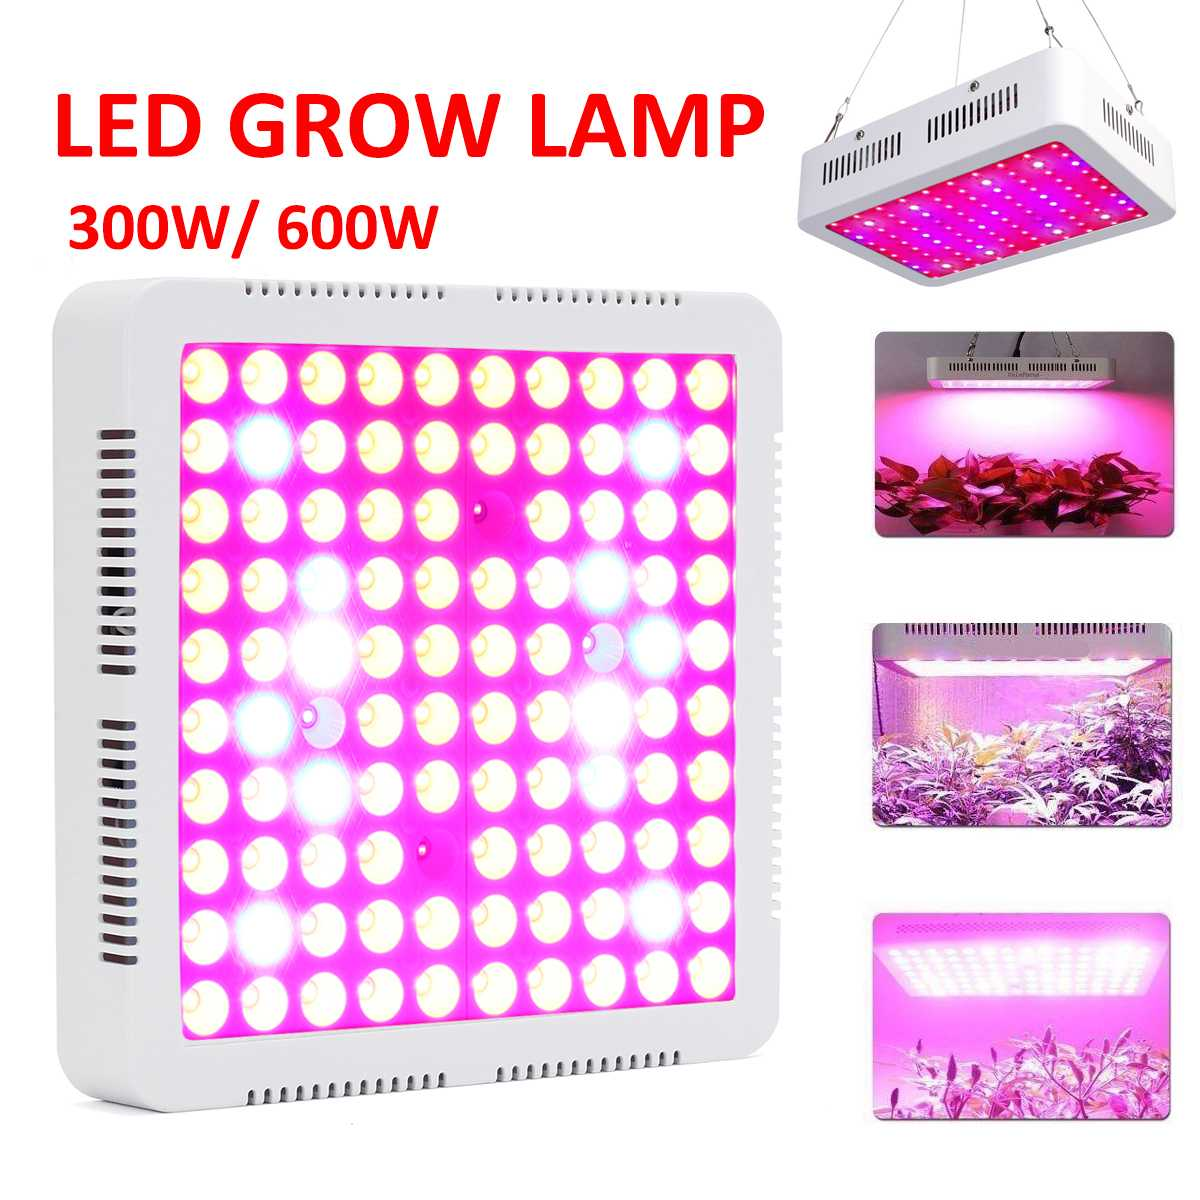 Professional LED Growing Lamps 600W Full Spectrum Red/Blue/White/UV/IR LED Grow Lamp Greenhouses Hydroponic Plant Growth LampProfessional LED Growing Lamps 600W Full Spectrum Red/Blue/White/UV/IR LED Grow Lamp Greenhouses Hydroponic Plant Growth Lamp